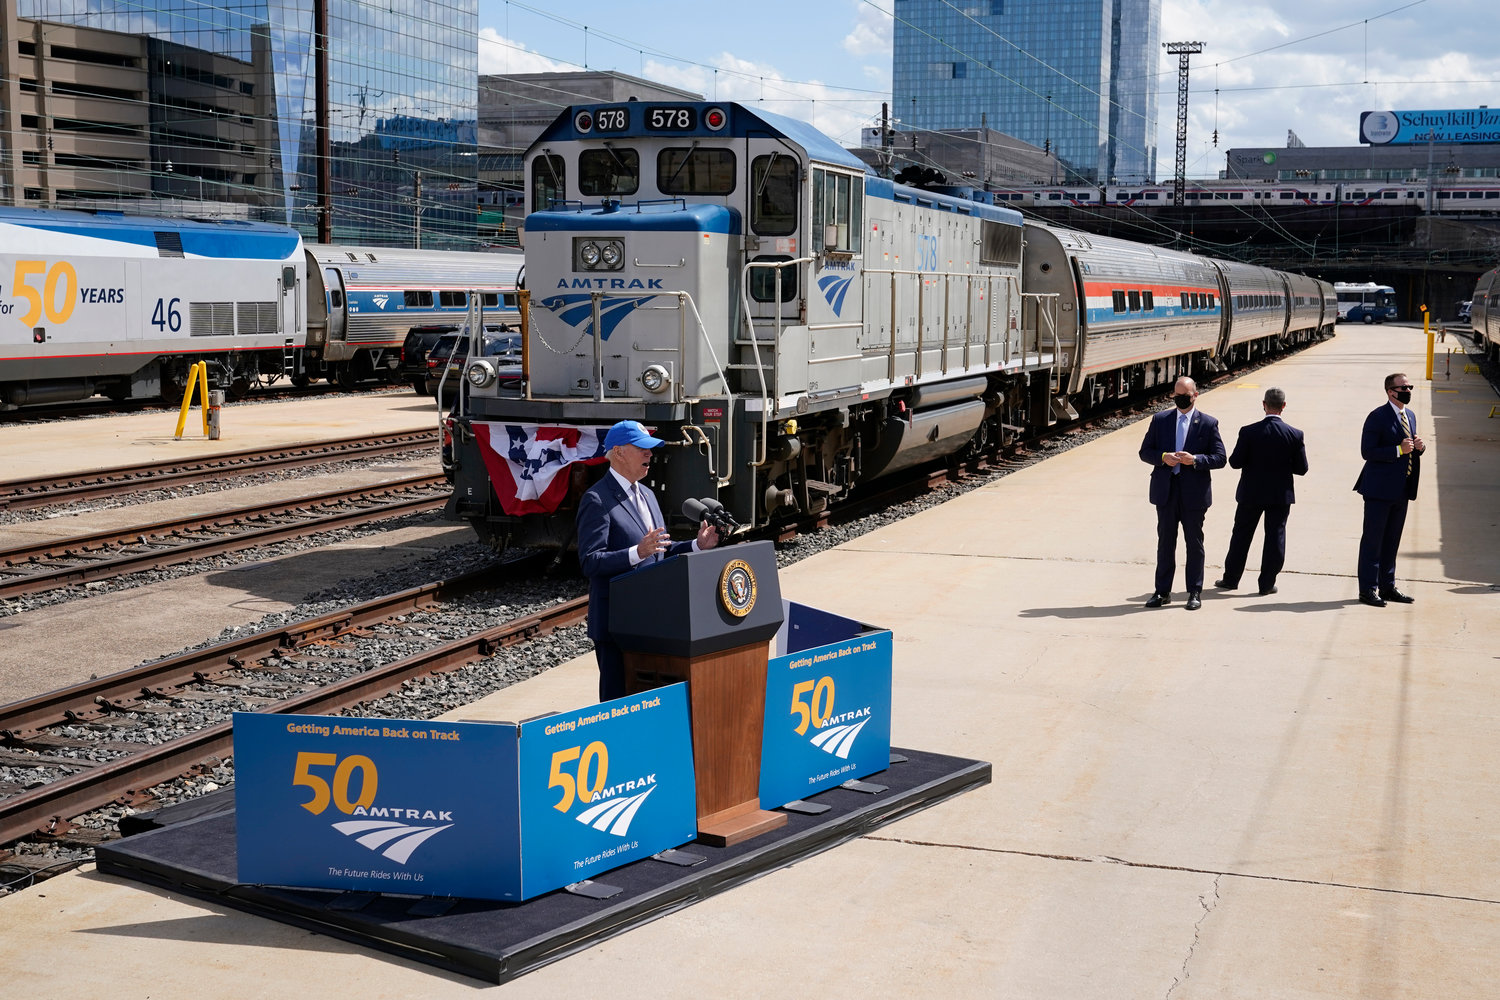 ALL ABOARD — President Joe Biden speaks during an event to mark Amtrak's 50th anniversary at 30th Street Station in Philadelphia Friday.